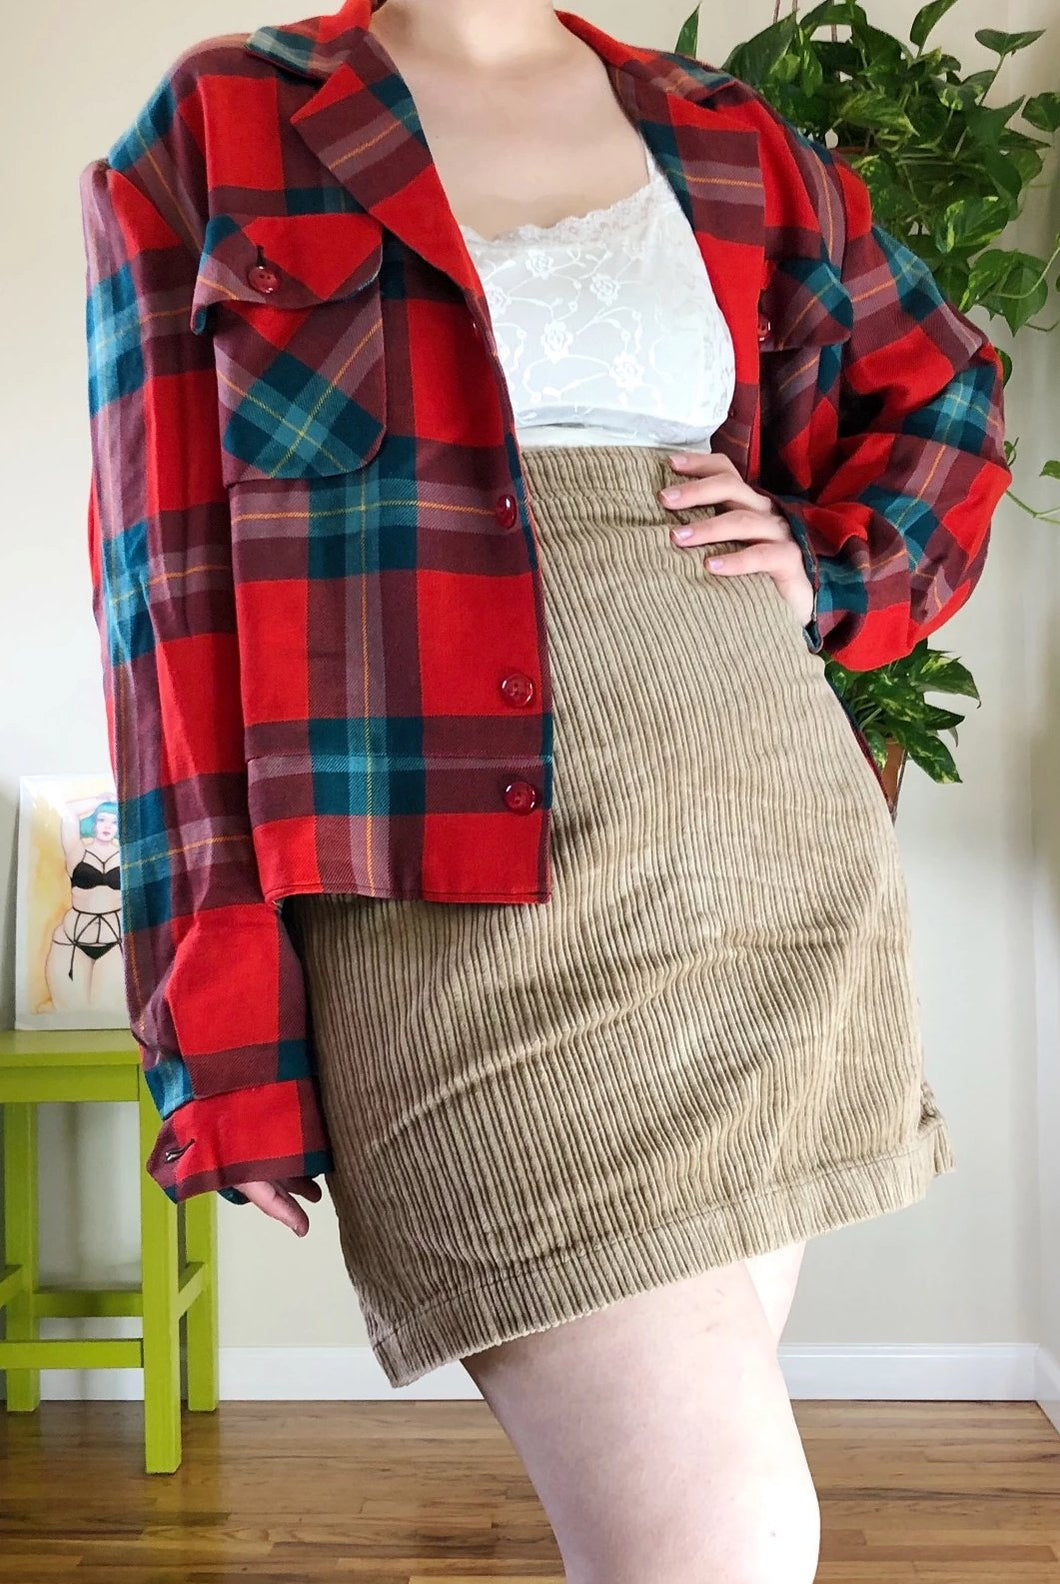 Vintage Plaid Satin-Lined Jacket - 2X/3X